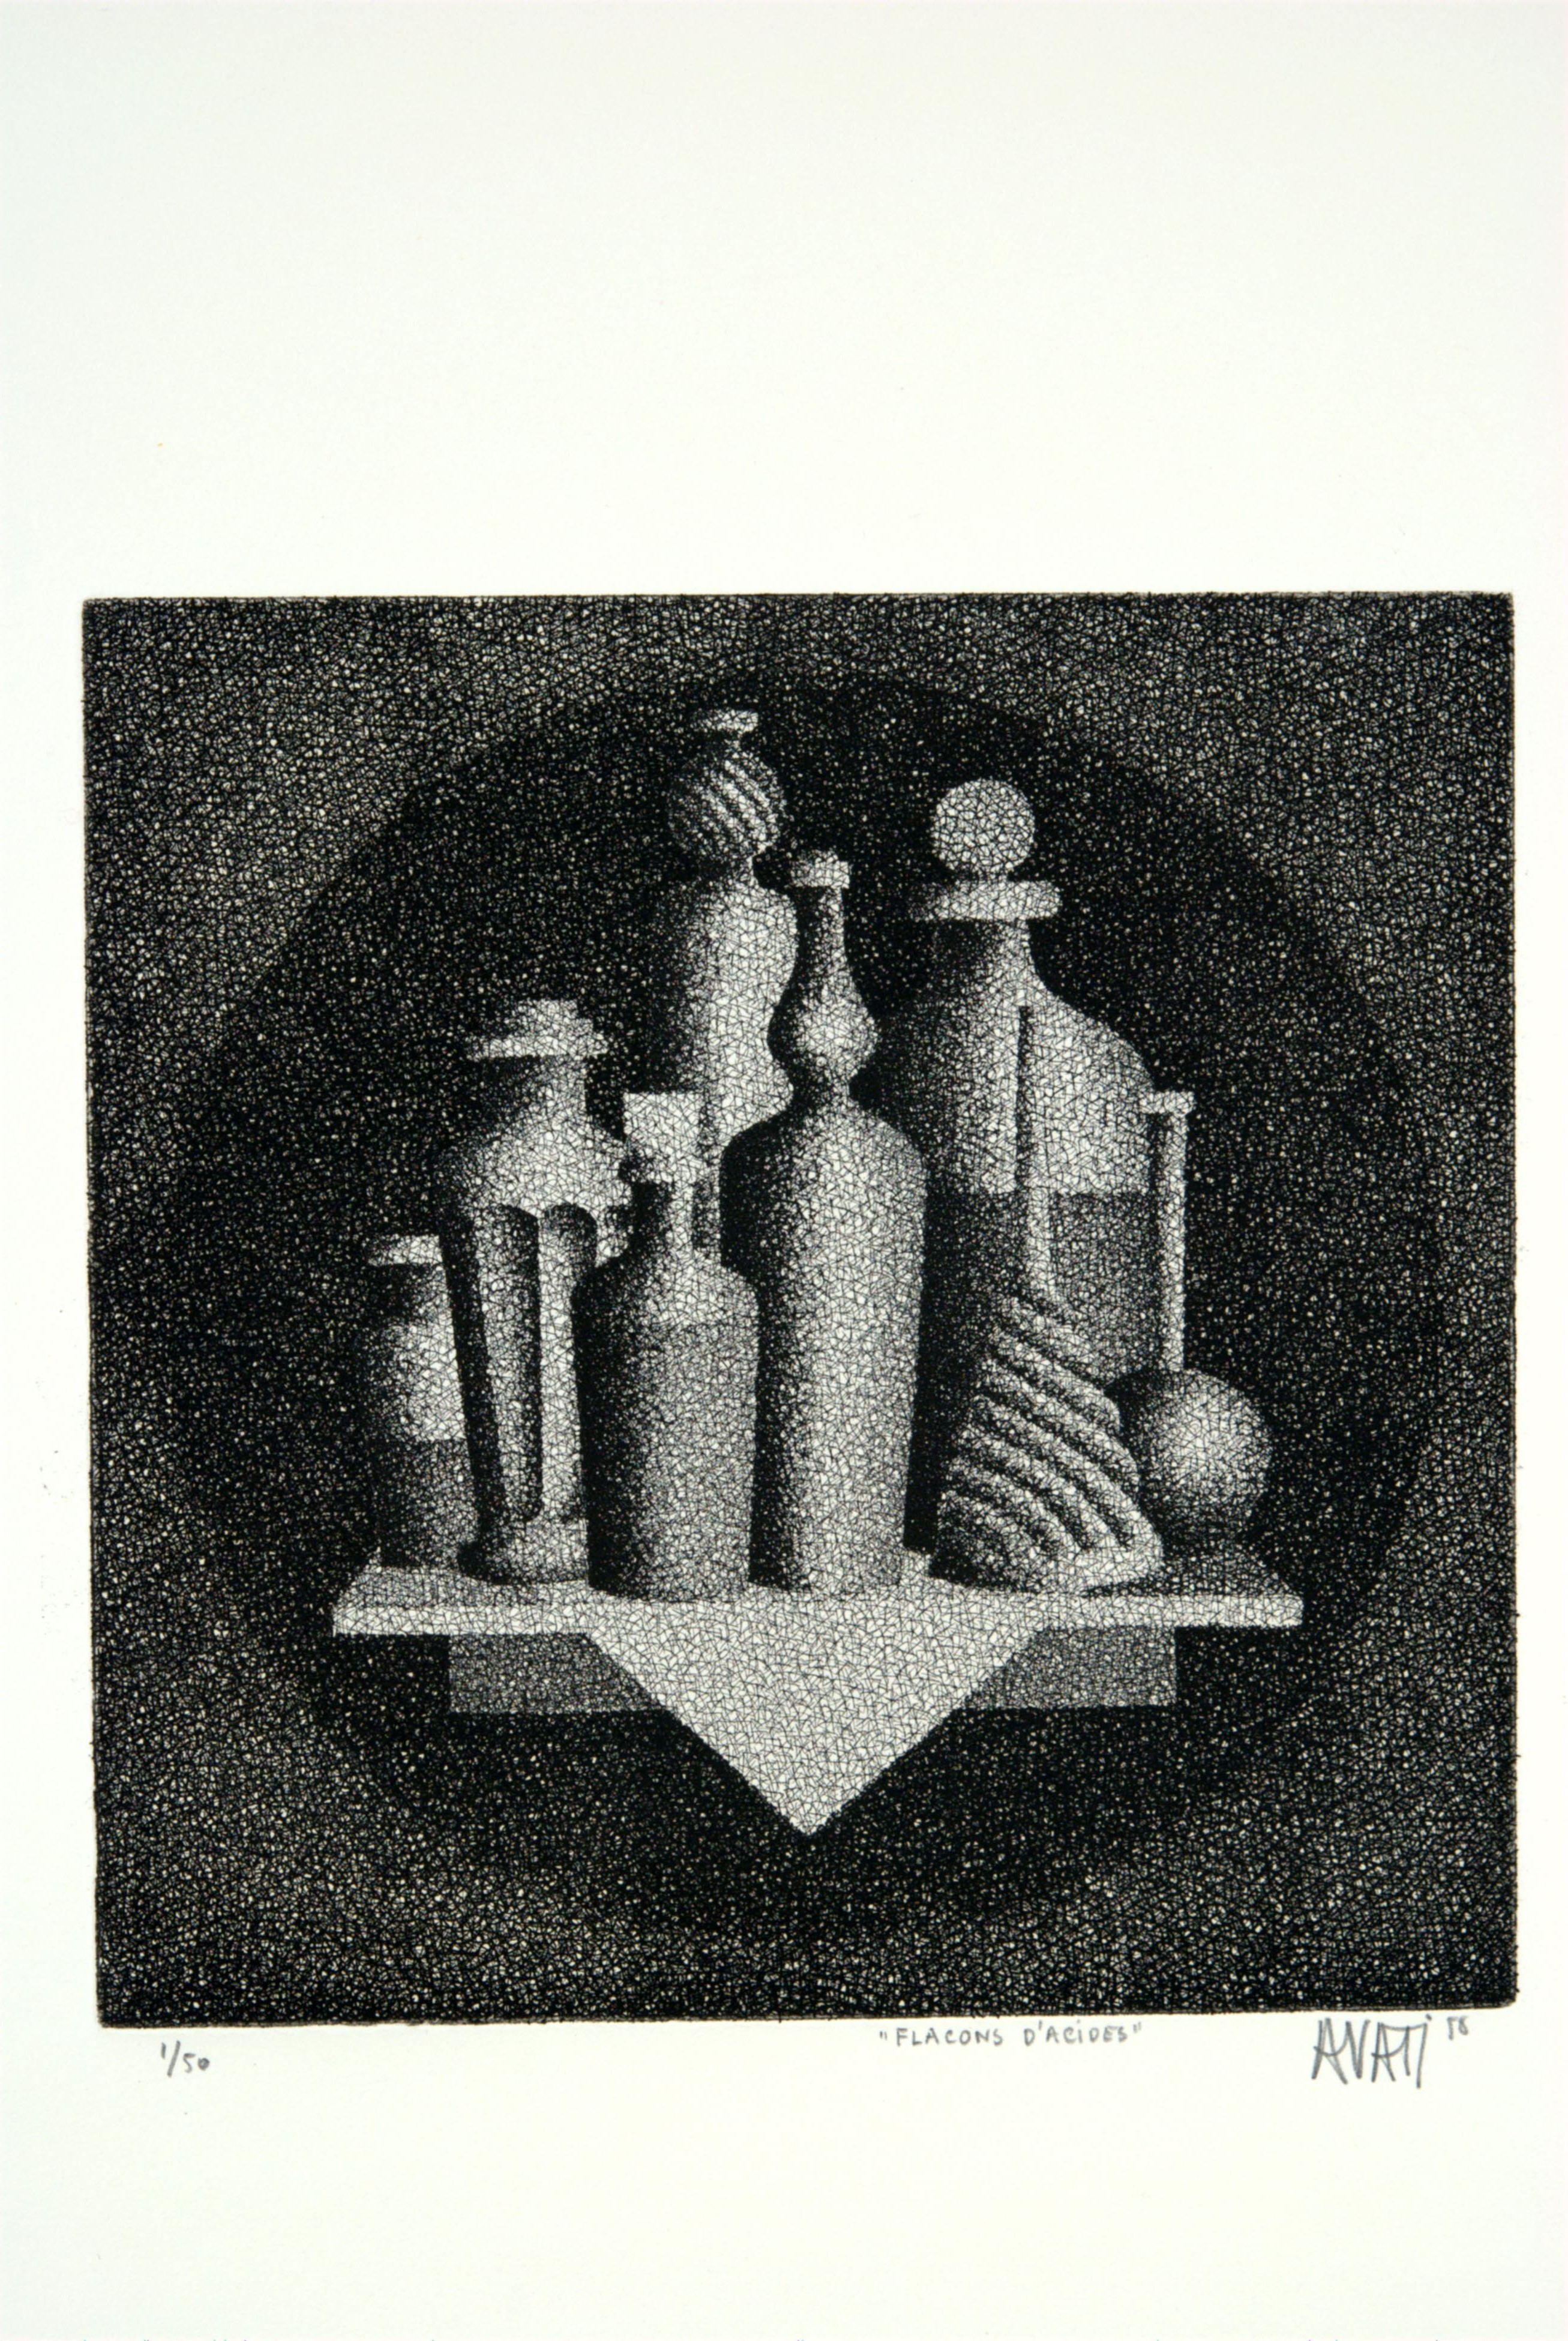 Mario Avati, Bottles of Acids, August 1958